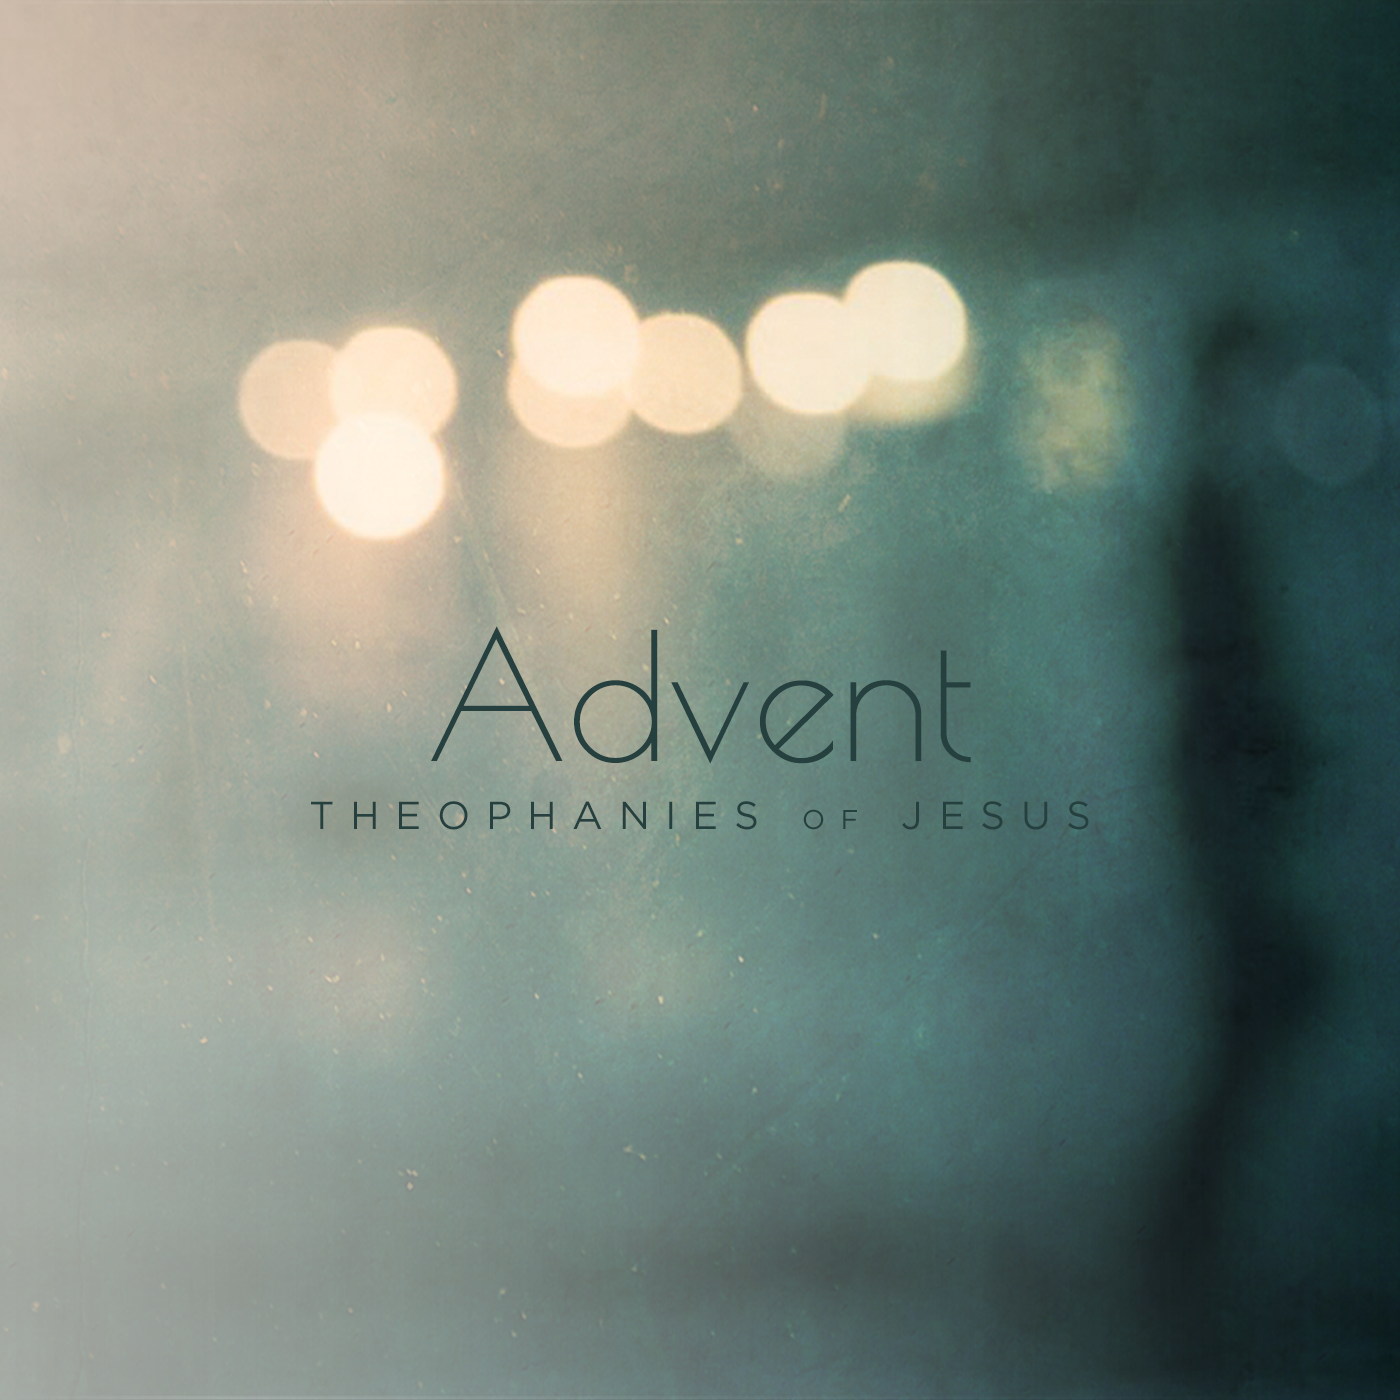 This is for our Advent 2018 Sermon Series.